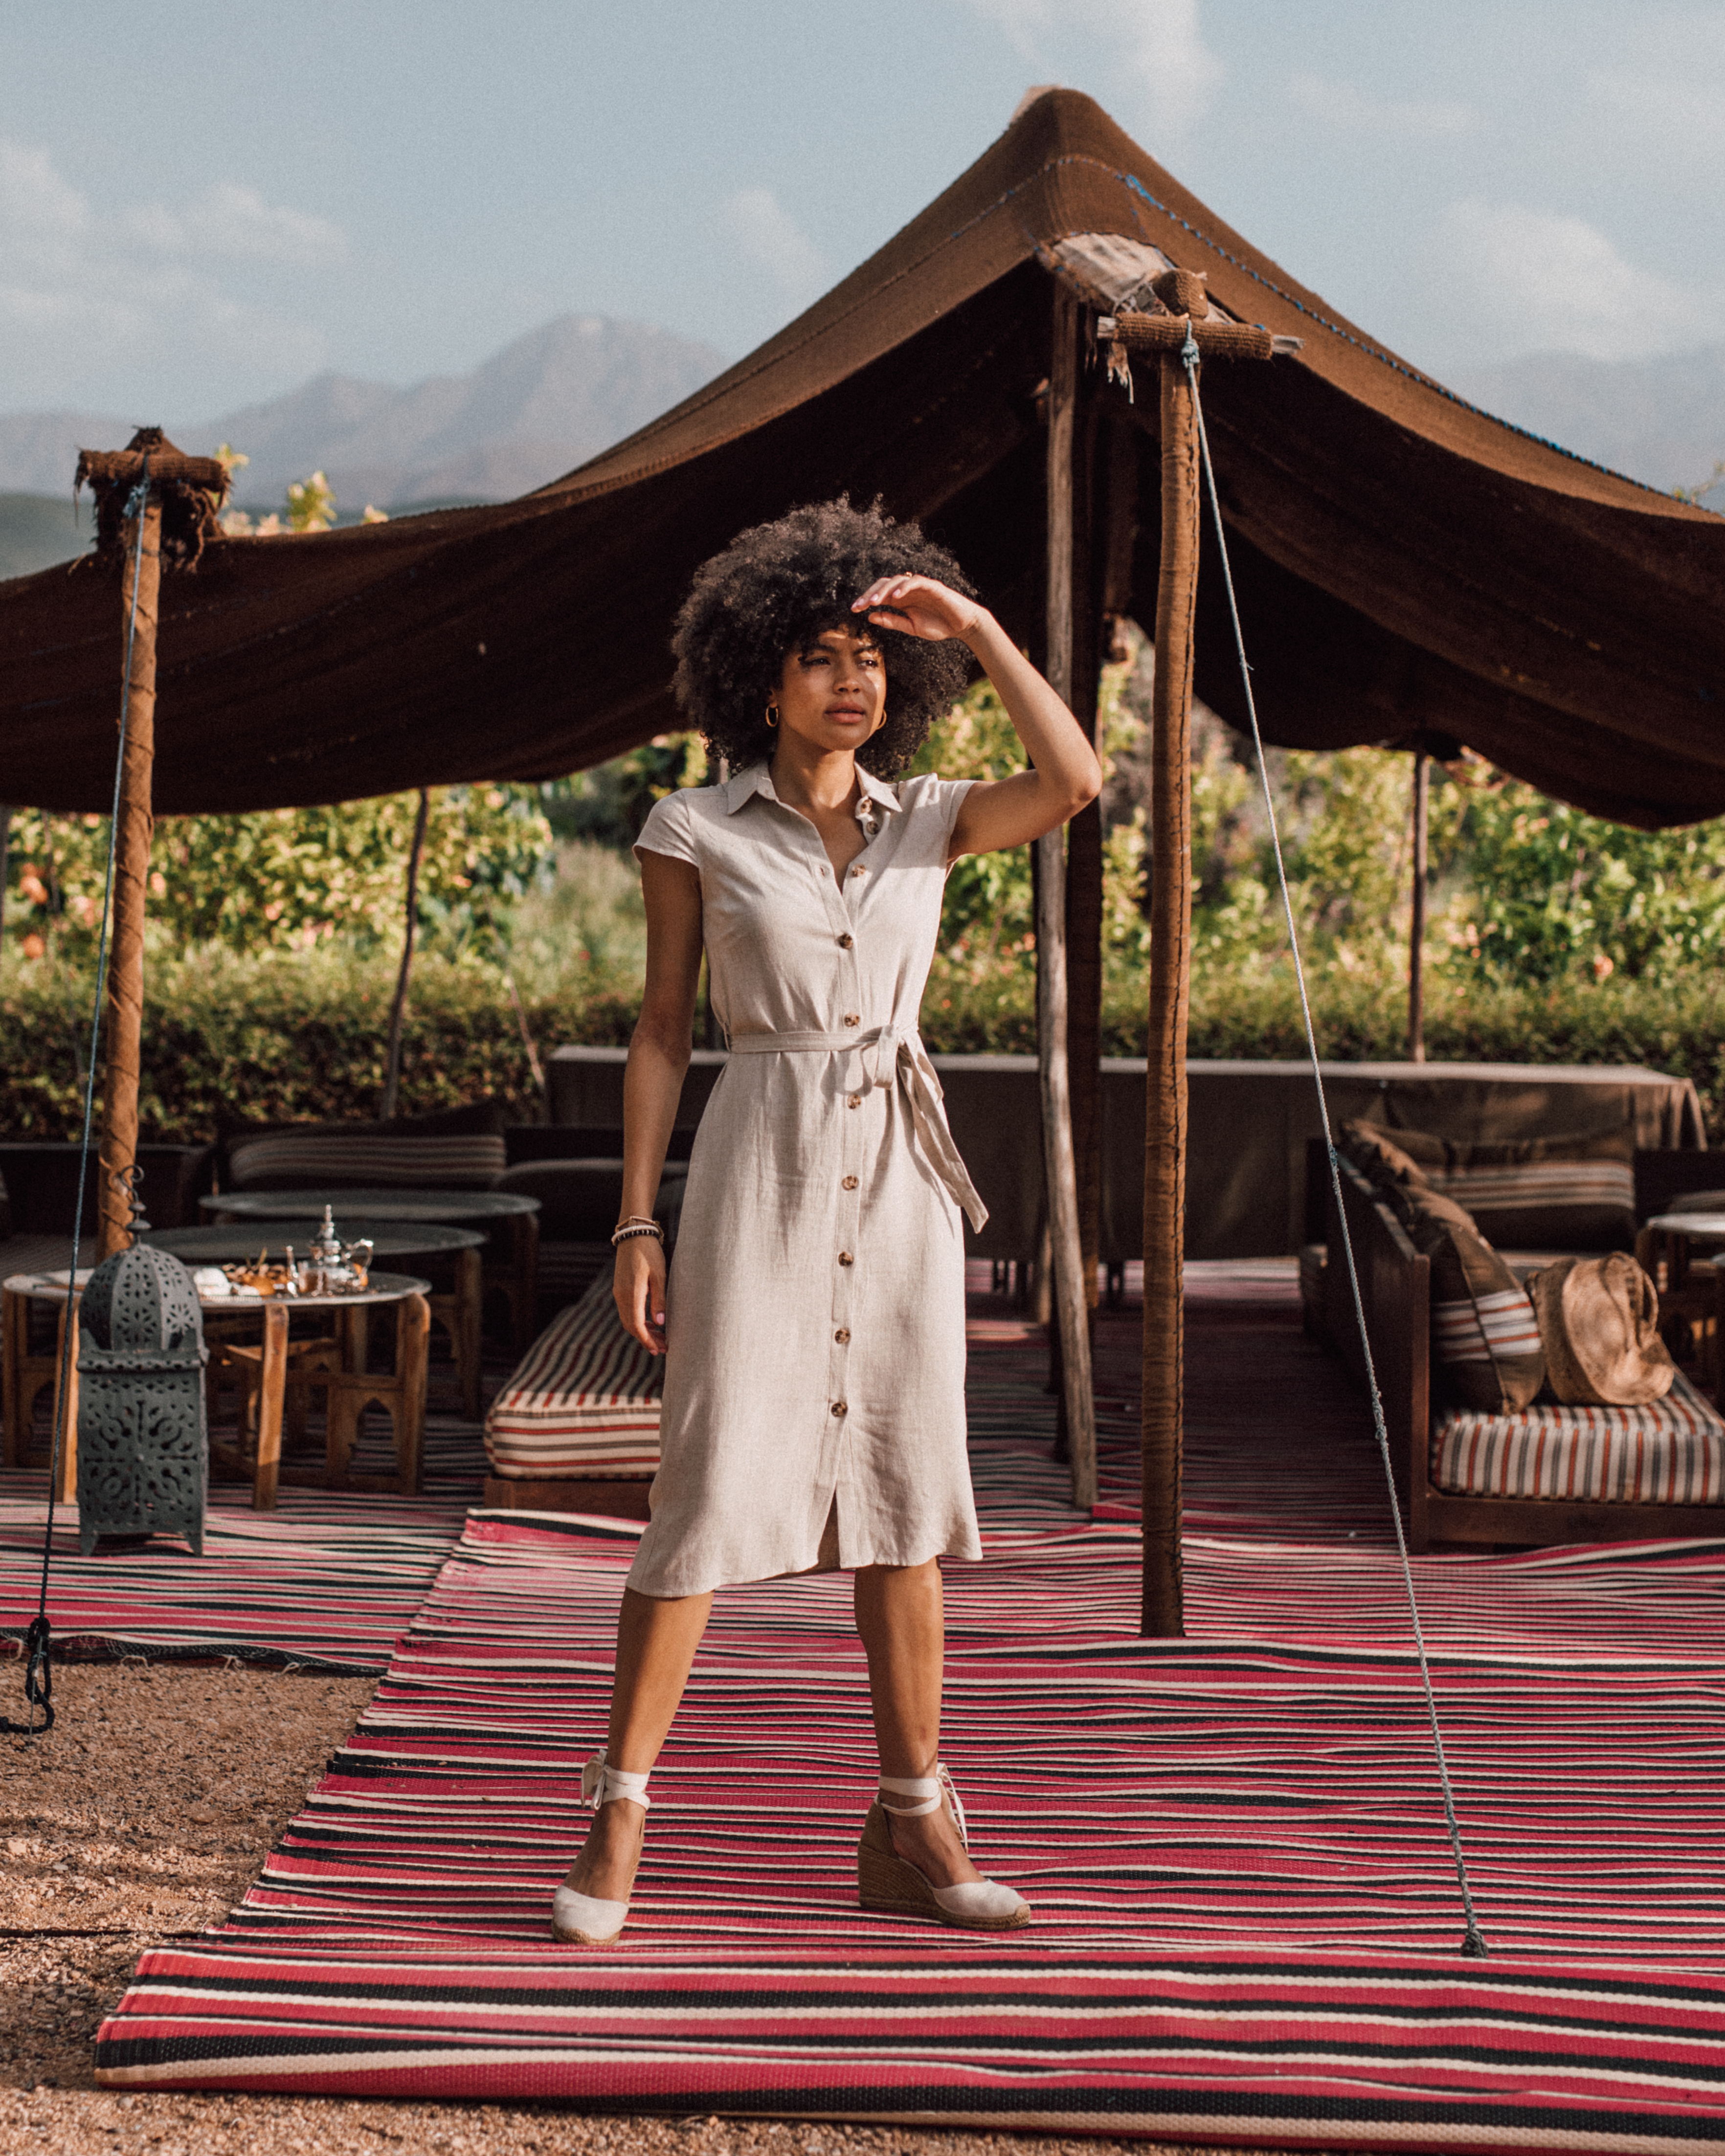 Fashion blogger Manchester in Morocco